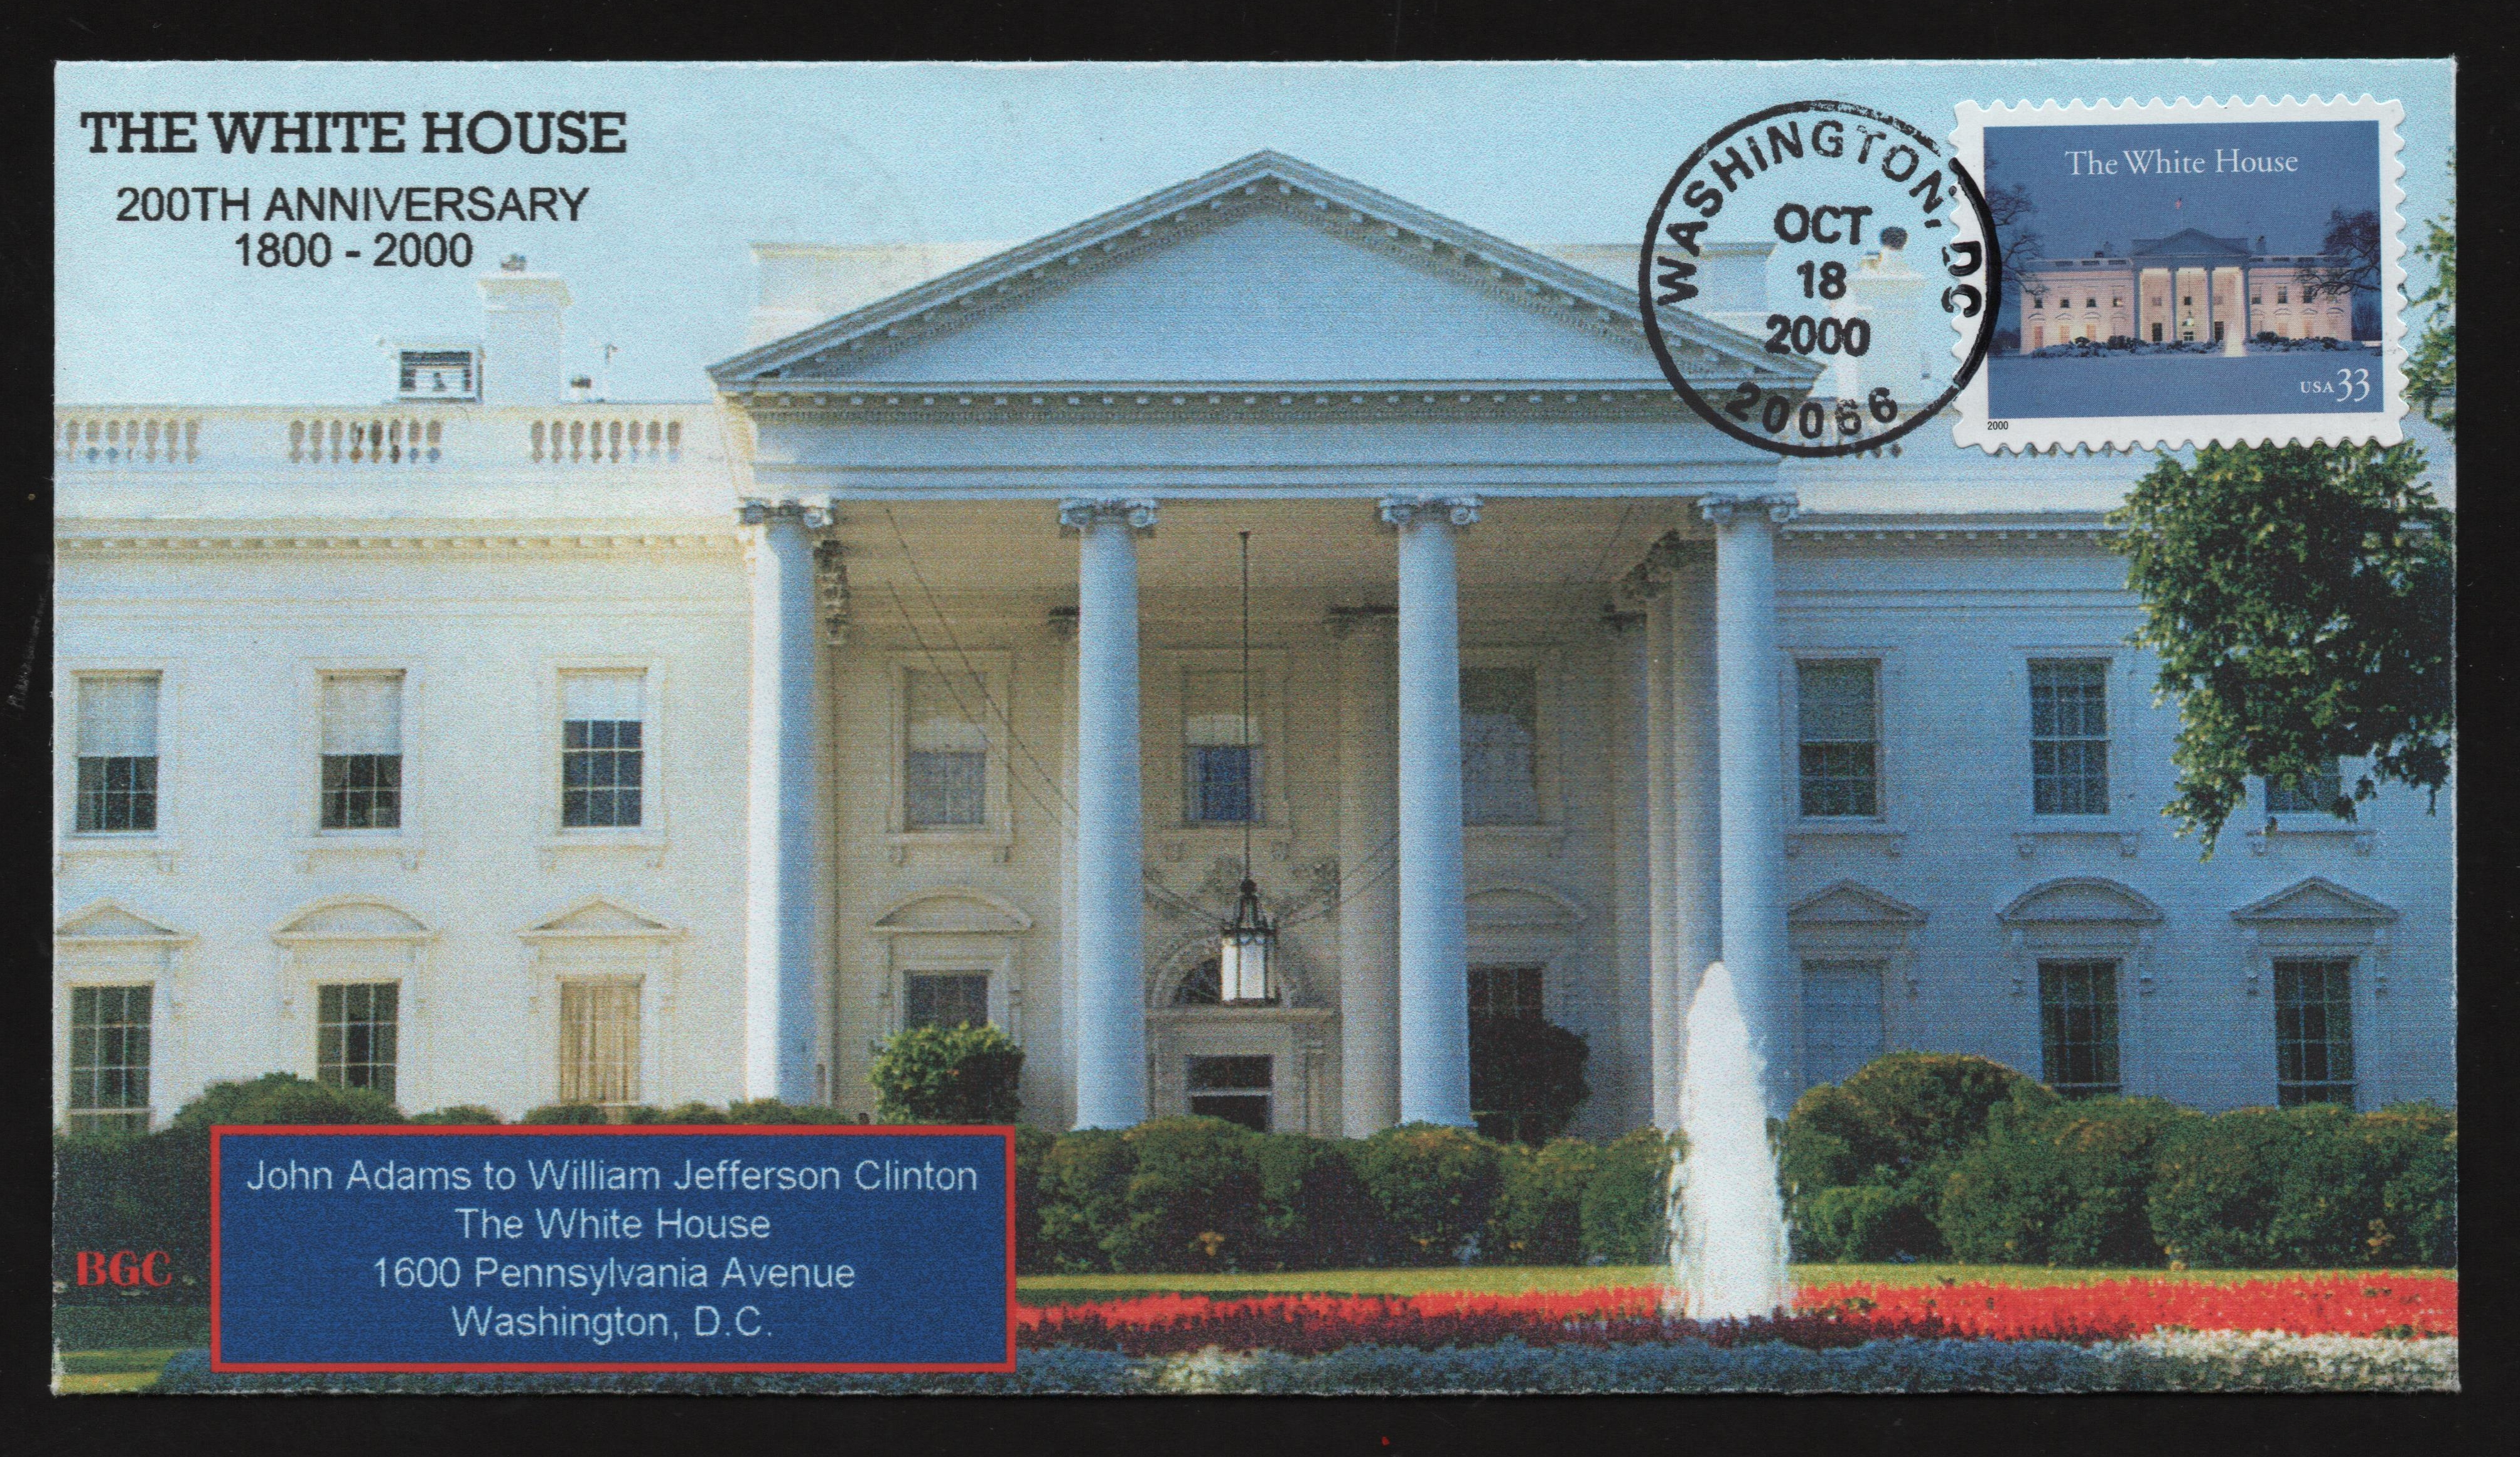 United States - Scott #3445 (2000) first day cover; front of the envelope features the north portal of the White House in Washington, D.C.